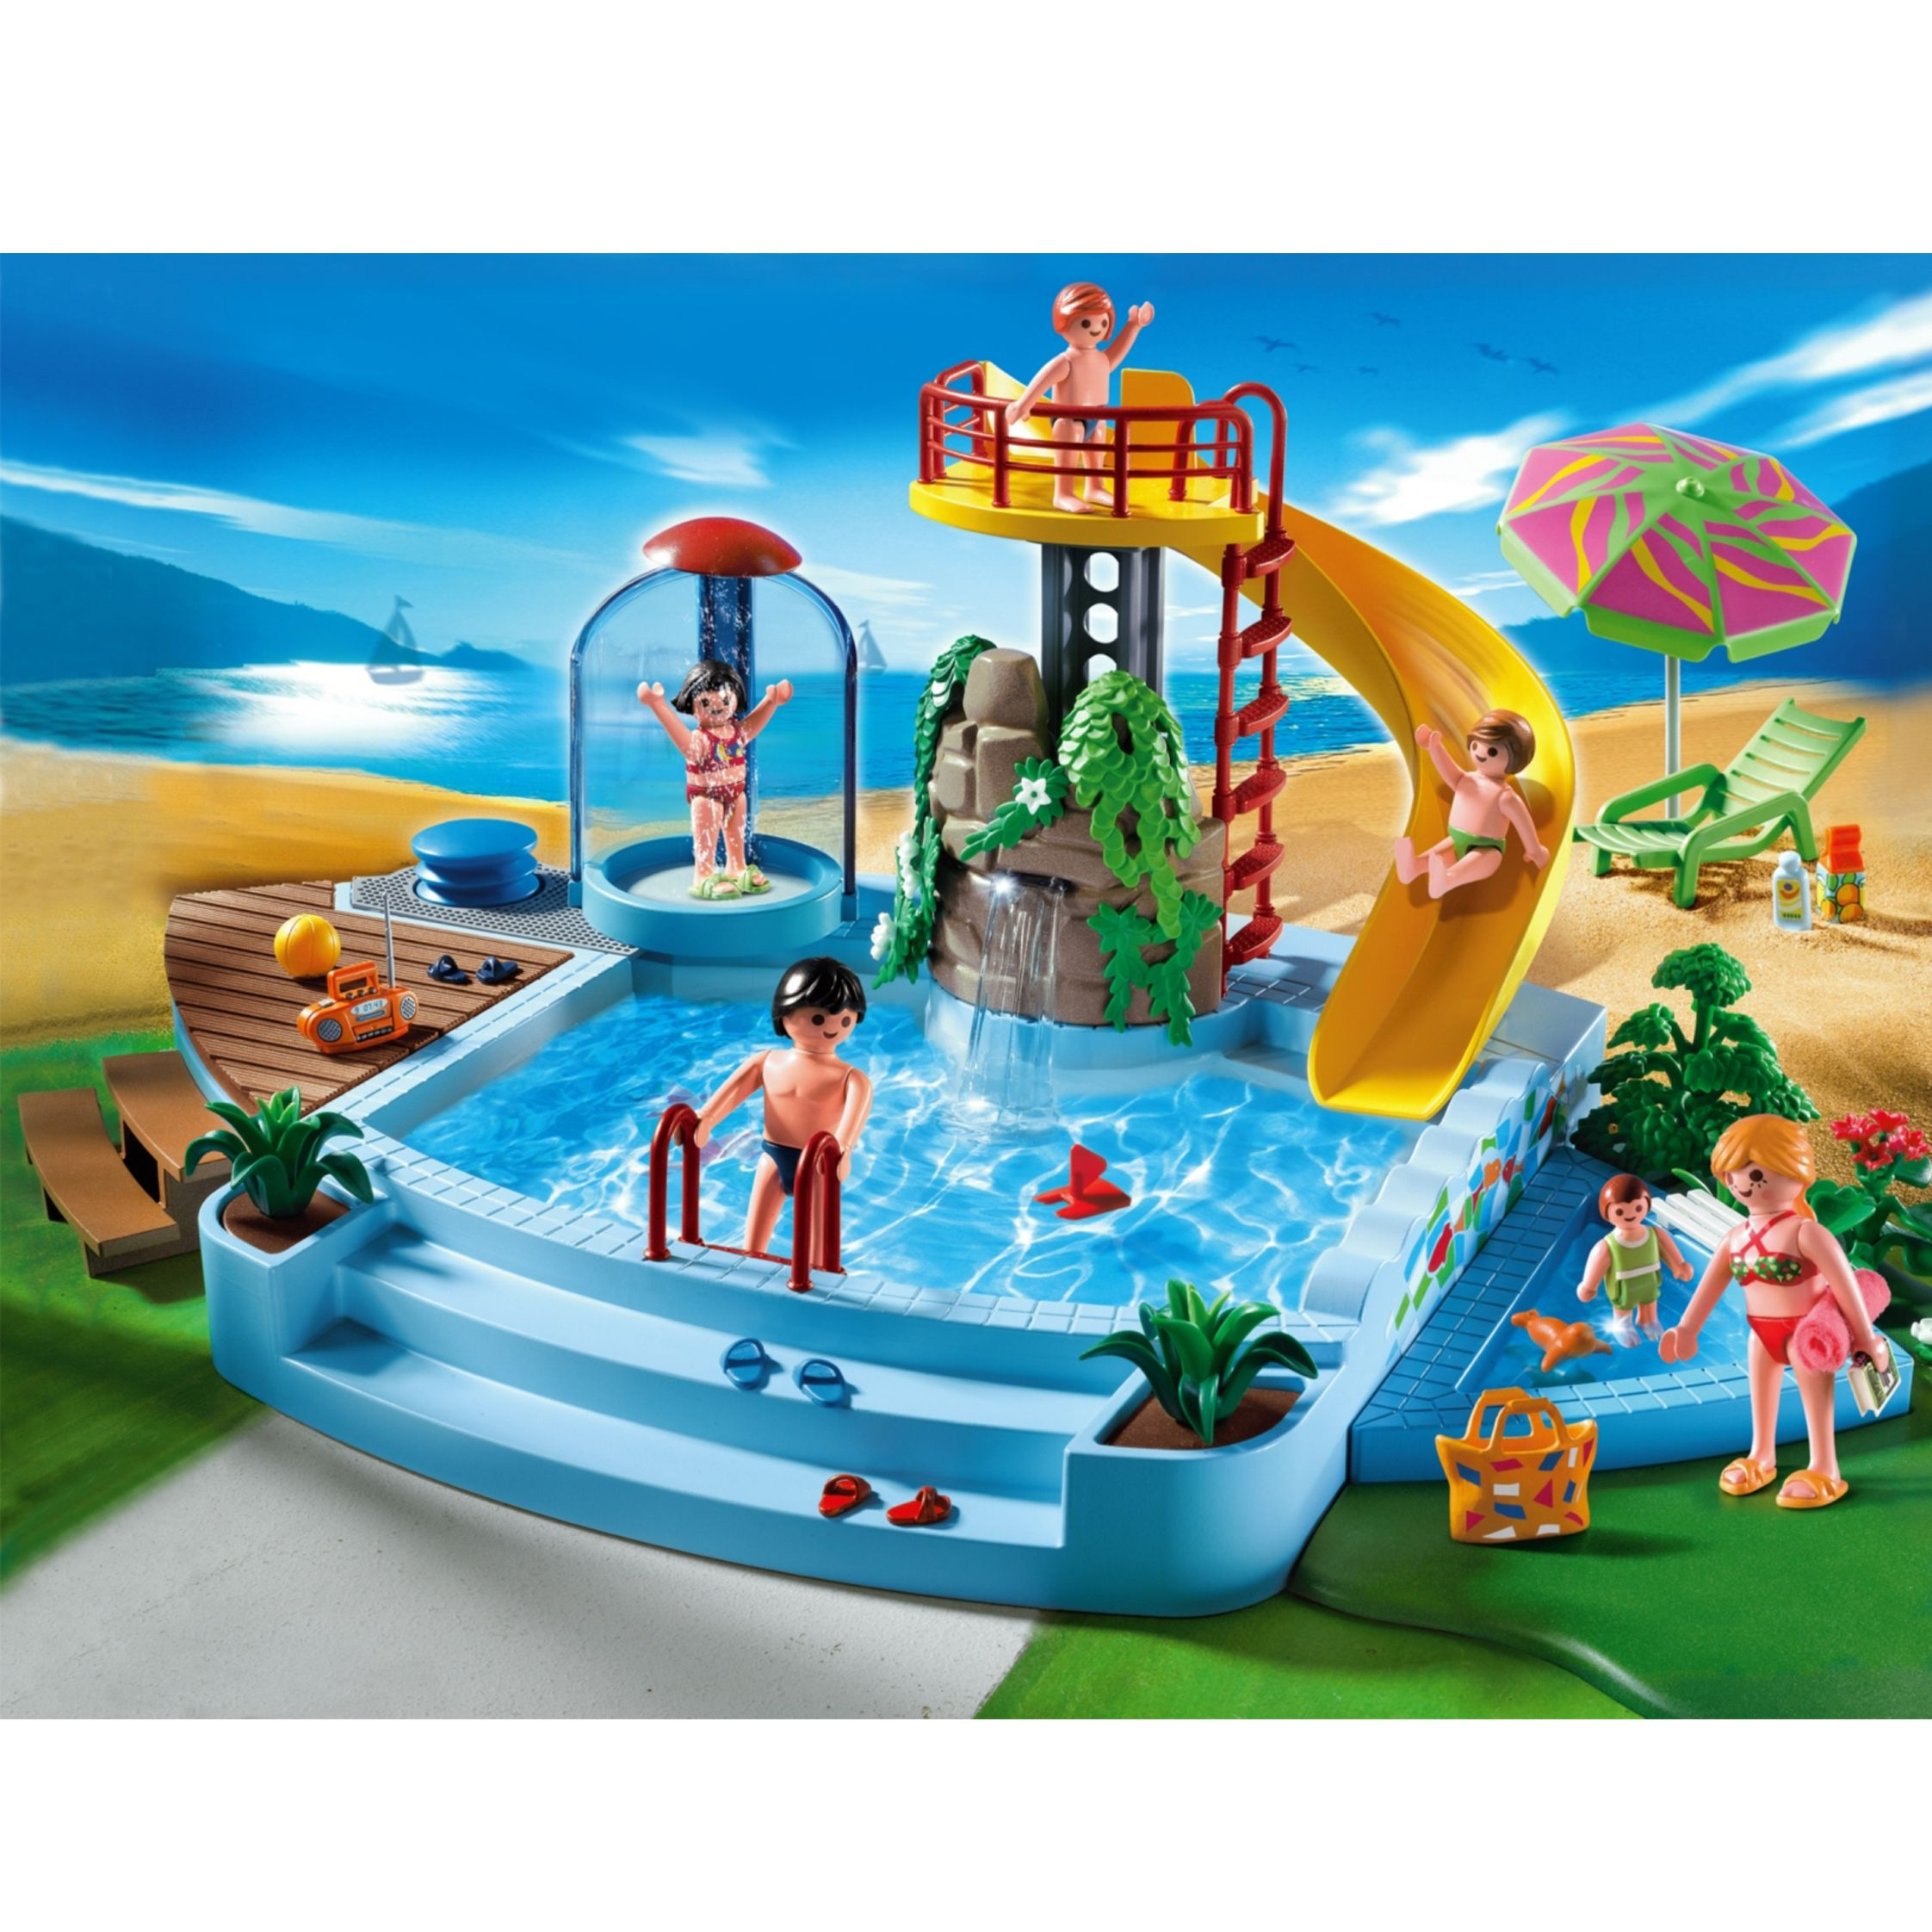 Click here for Playmobil Pool and Water Slide